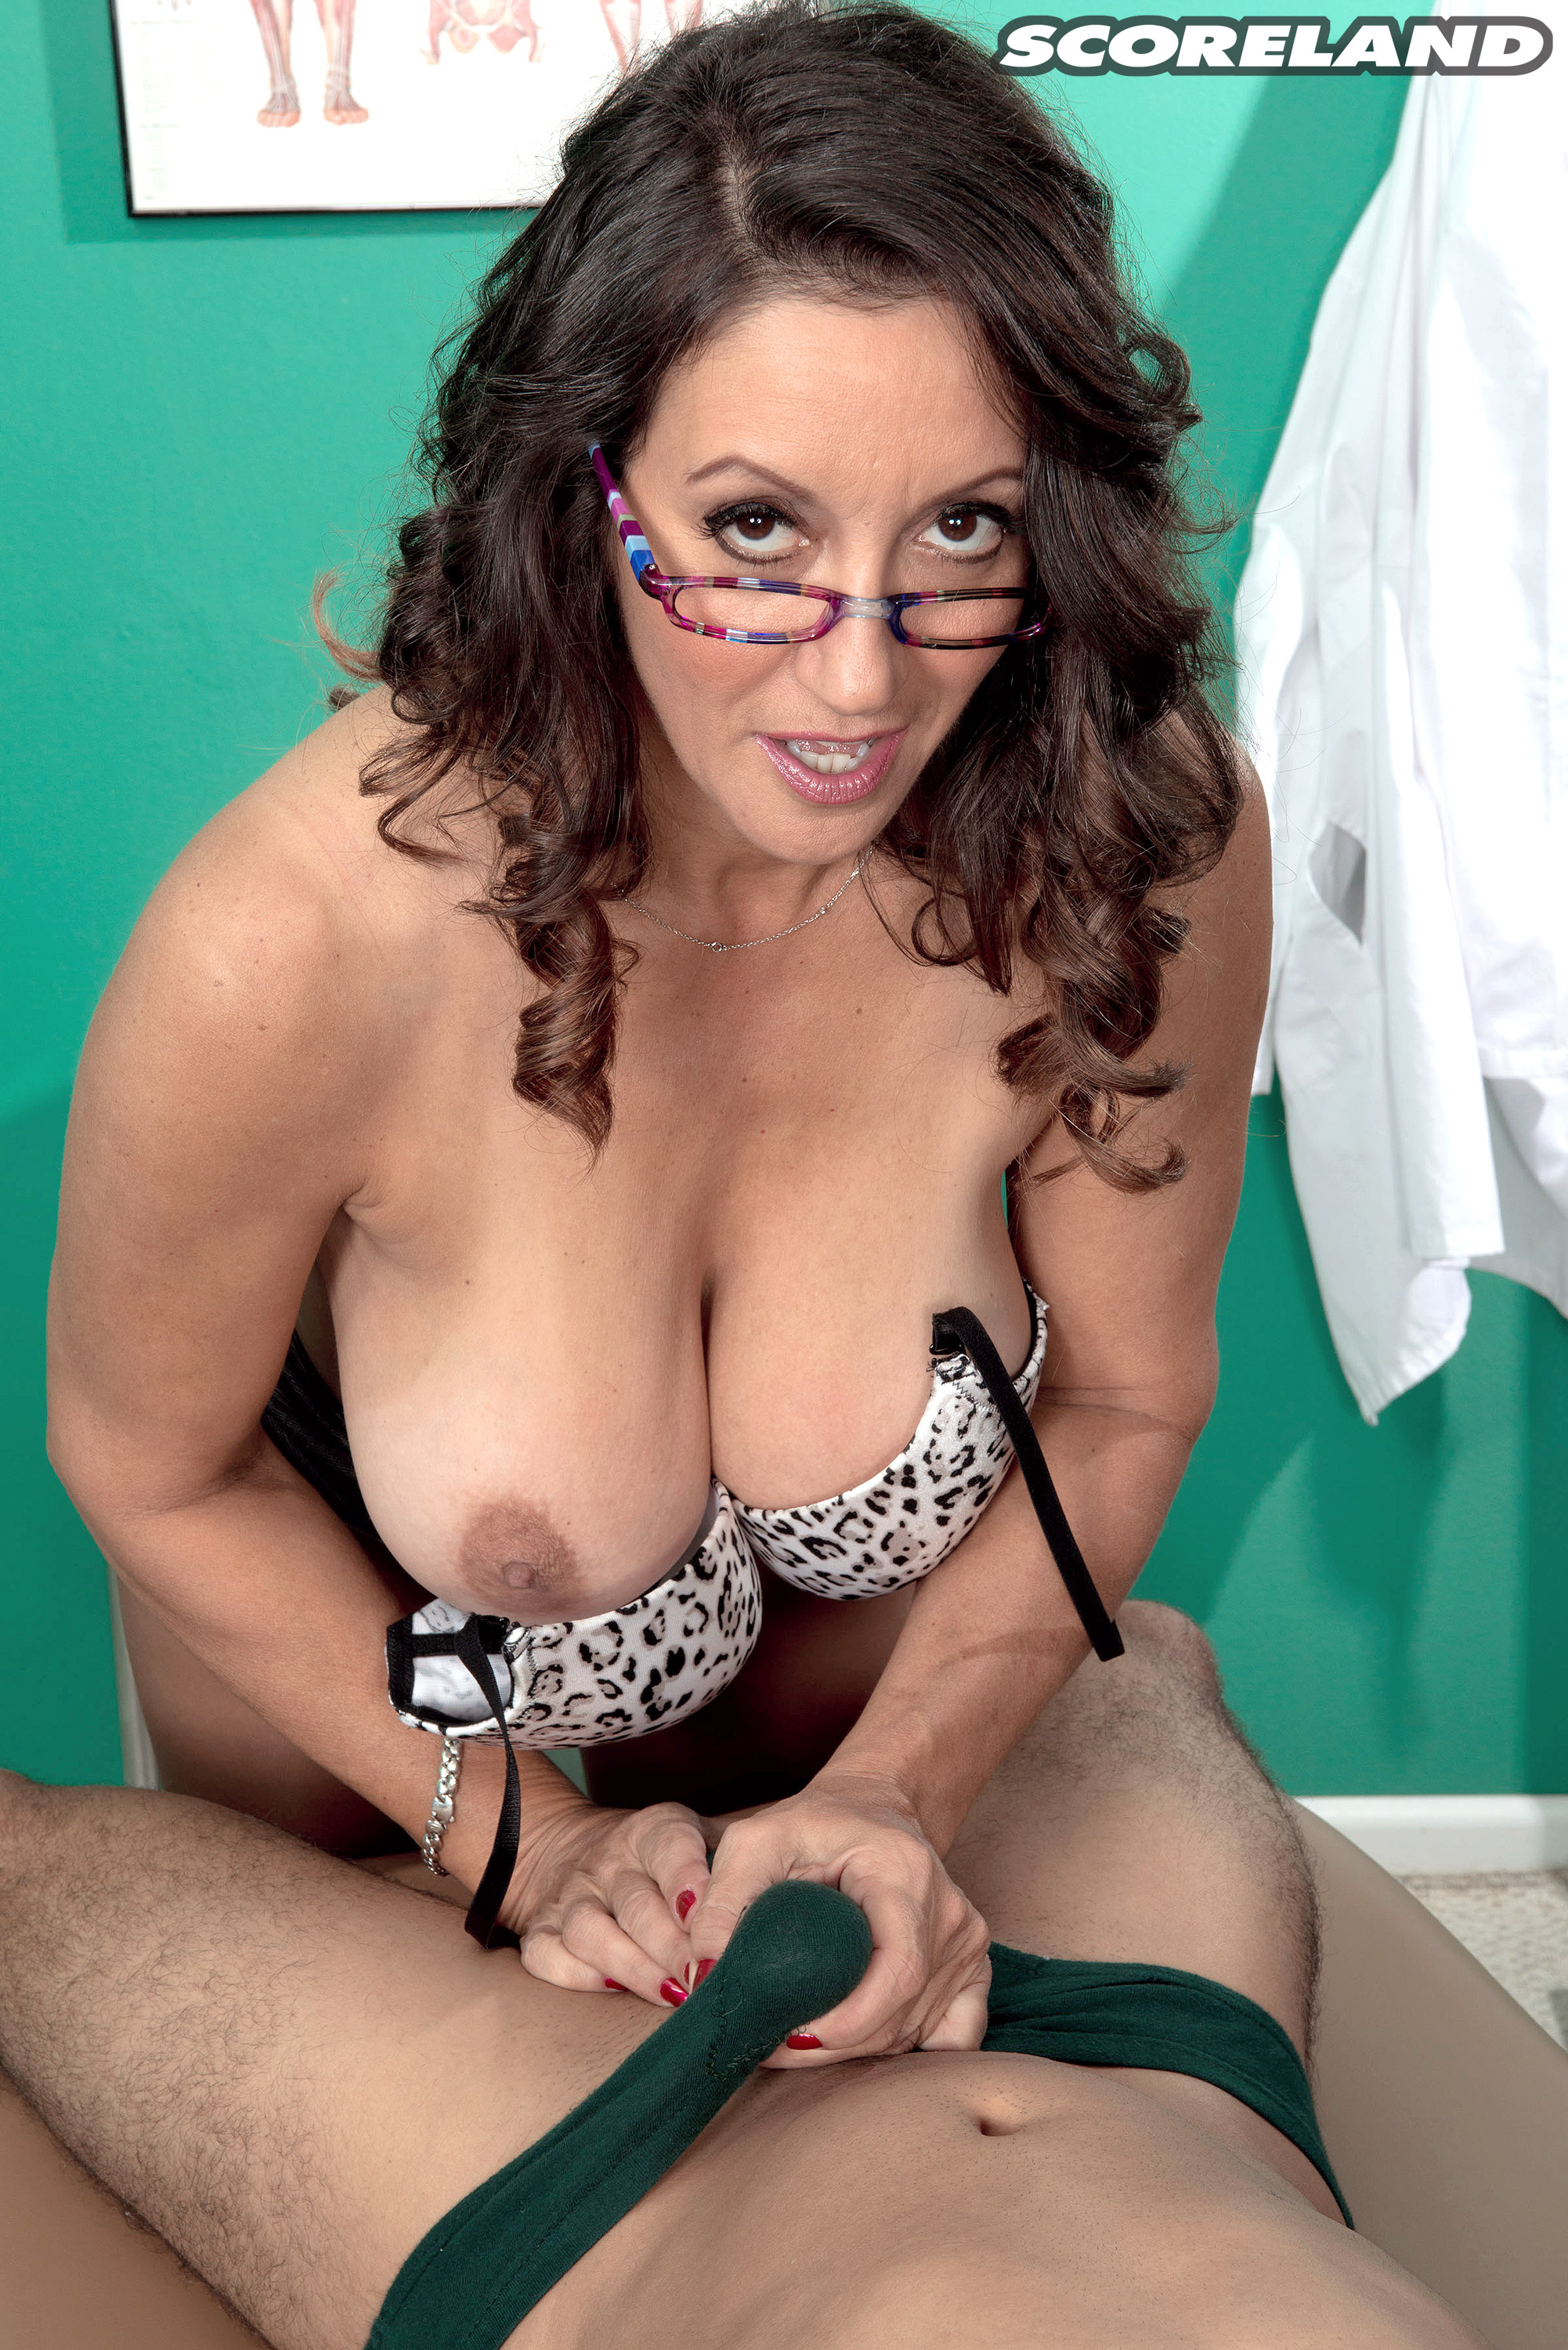 must Sexy big titts porn i'd like thank